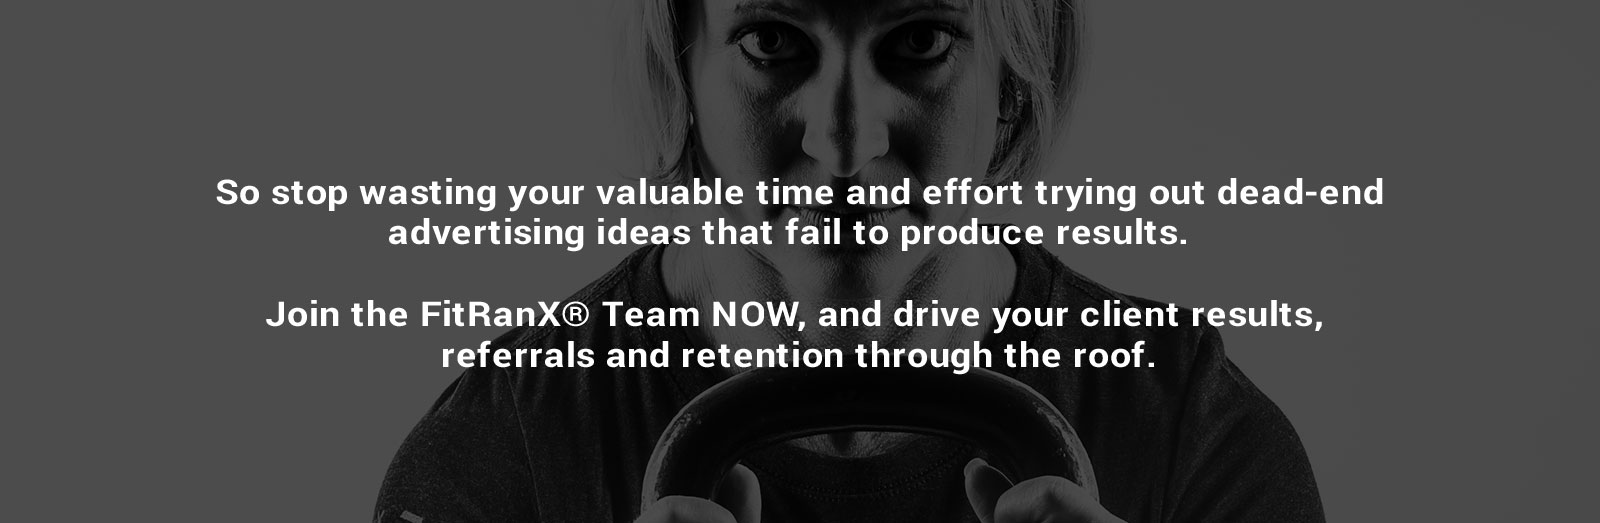 So stop wasting your valuable time and effort trying out dead-end advertising ideas that fail to produce results. Join the FitRanX® Team NOW, and drive your client results, referrals and retention through the roof.